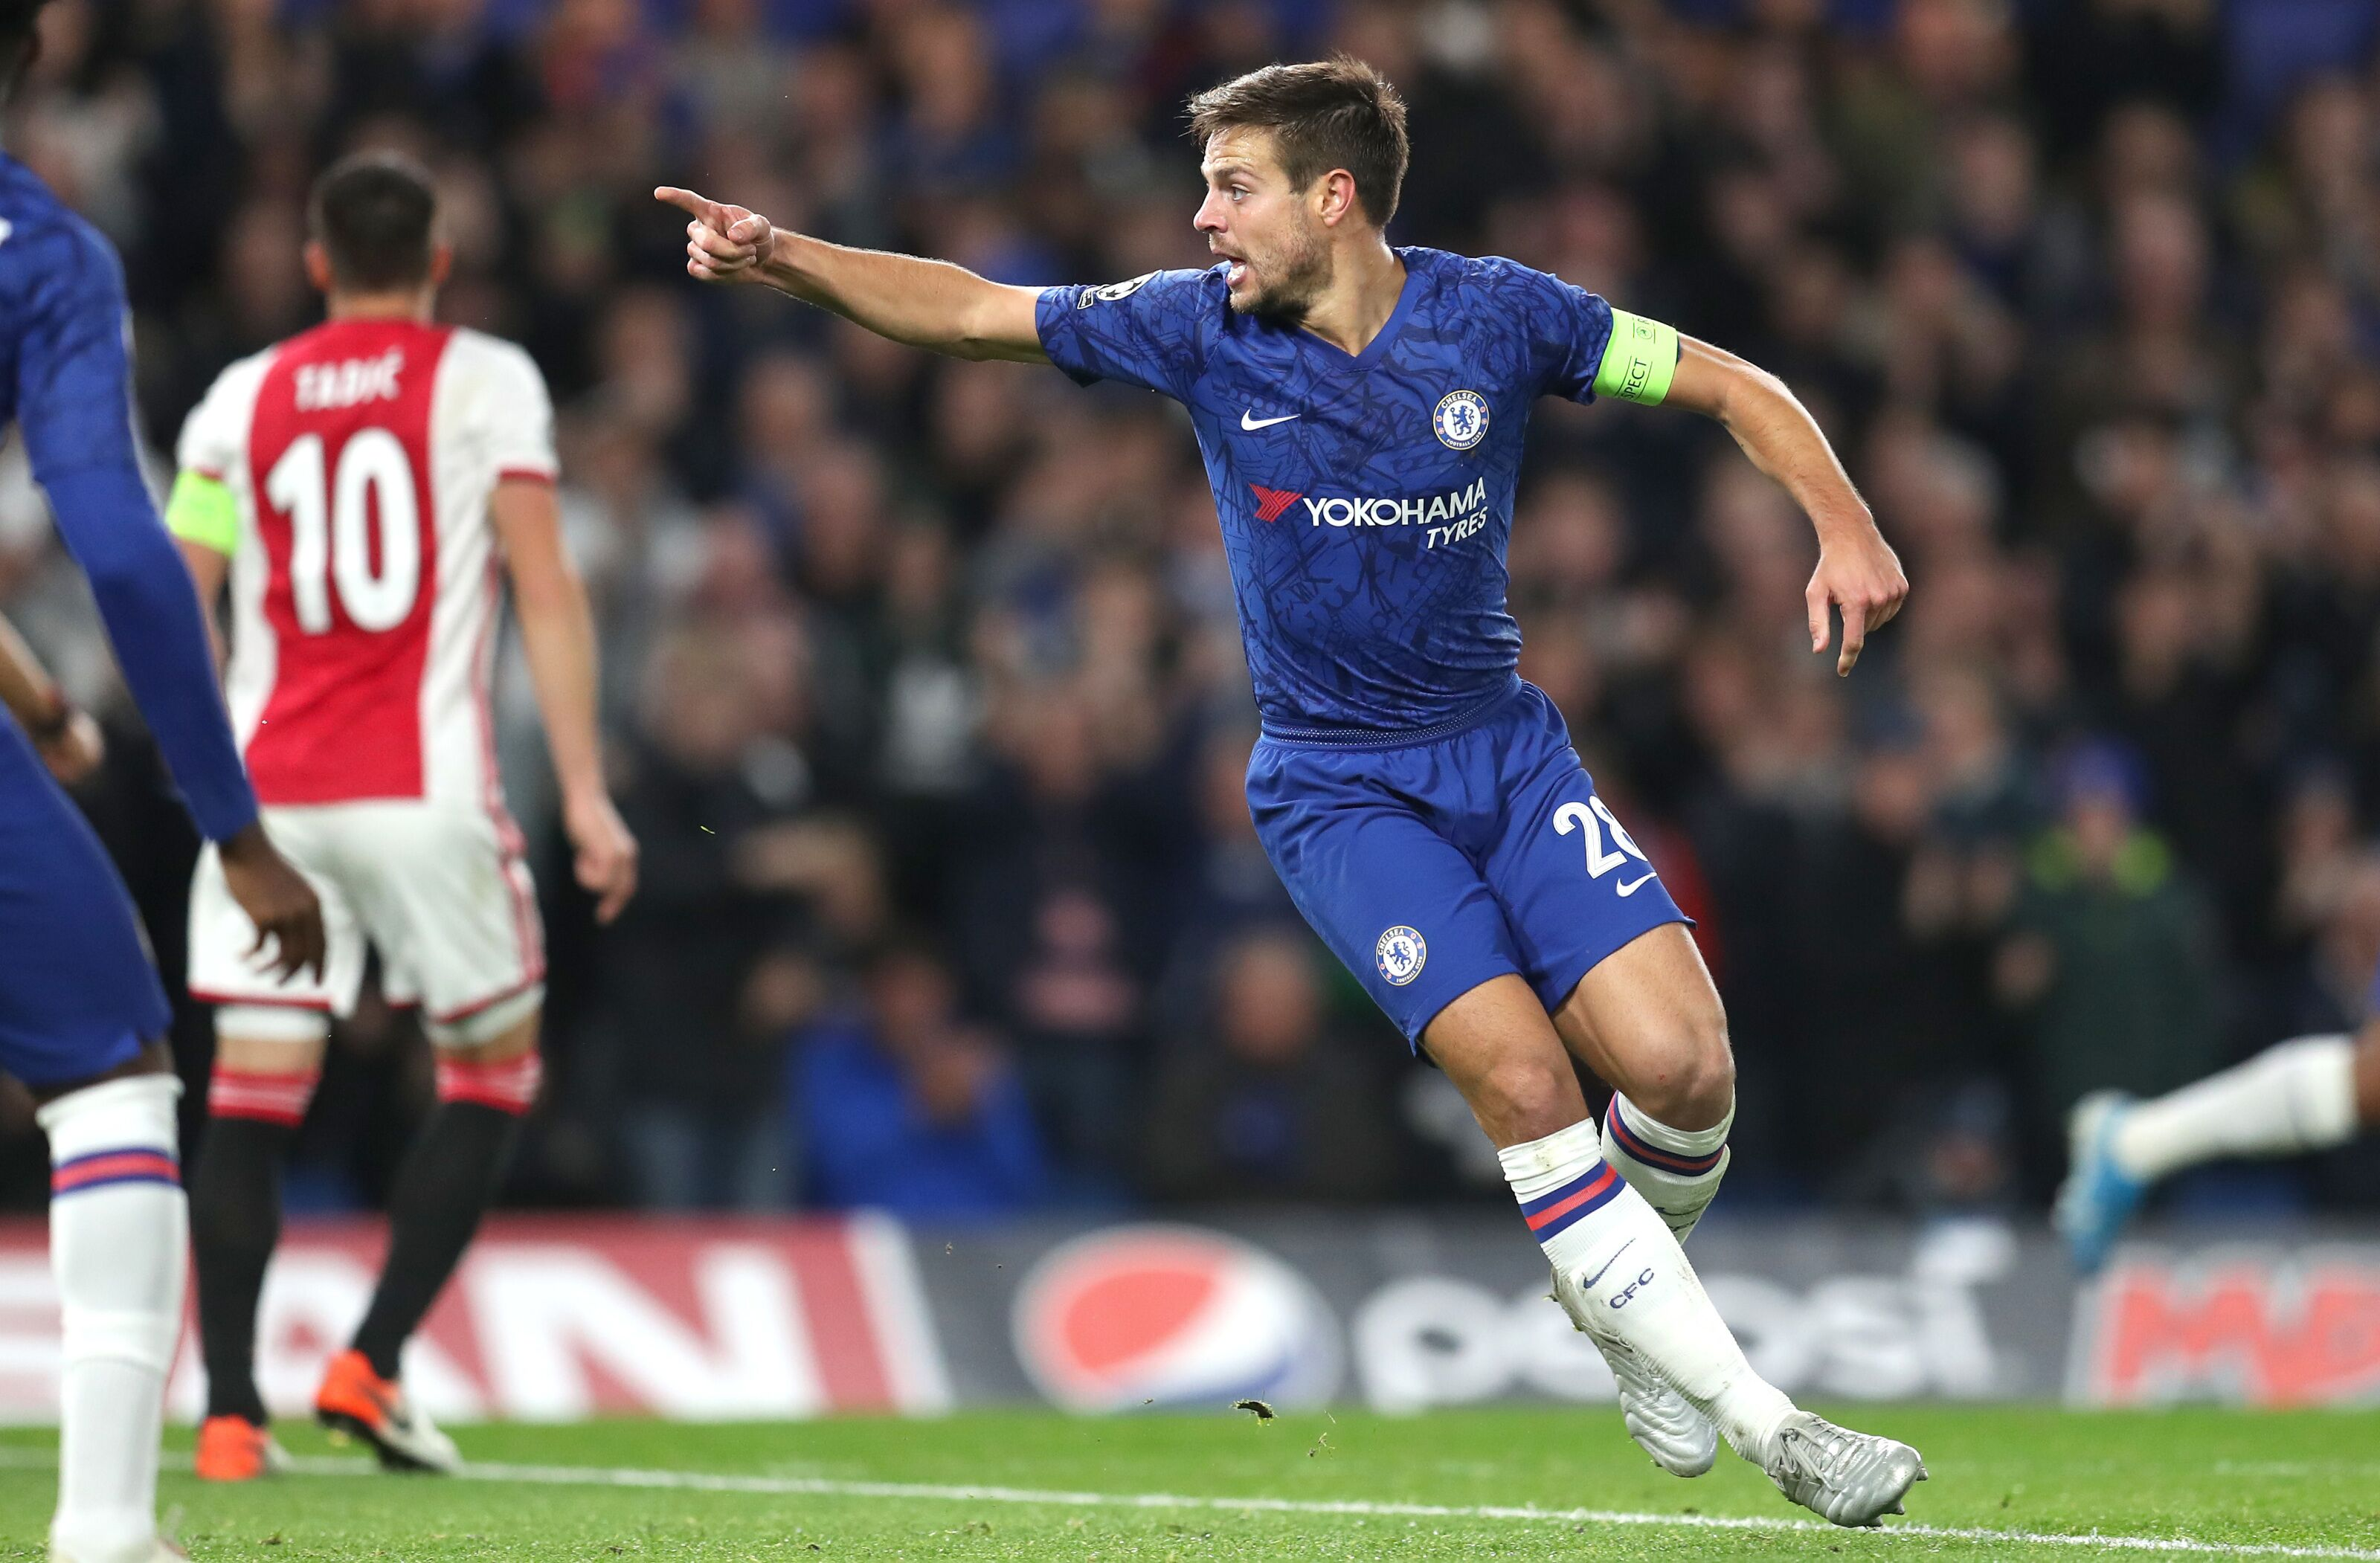 Chelsea: Cesar Azpilicueta covertly joining PL's all-time top assisting defenders